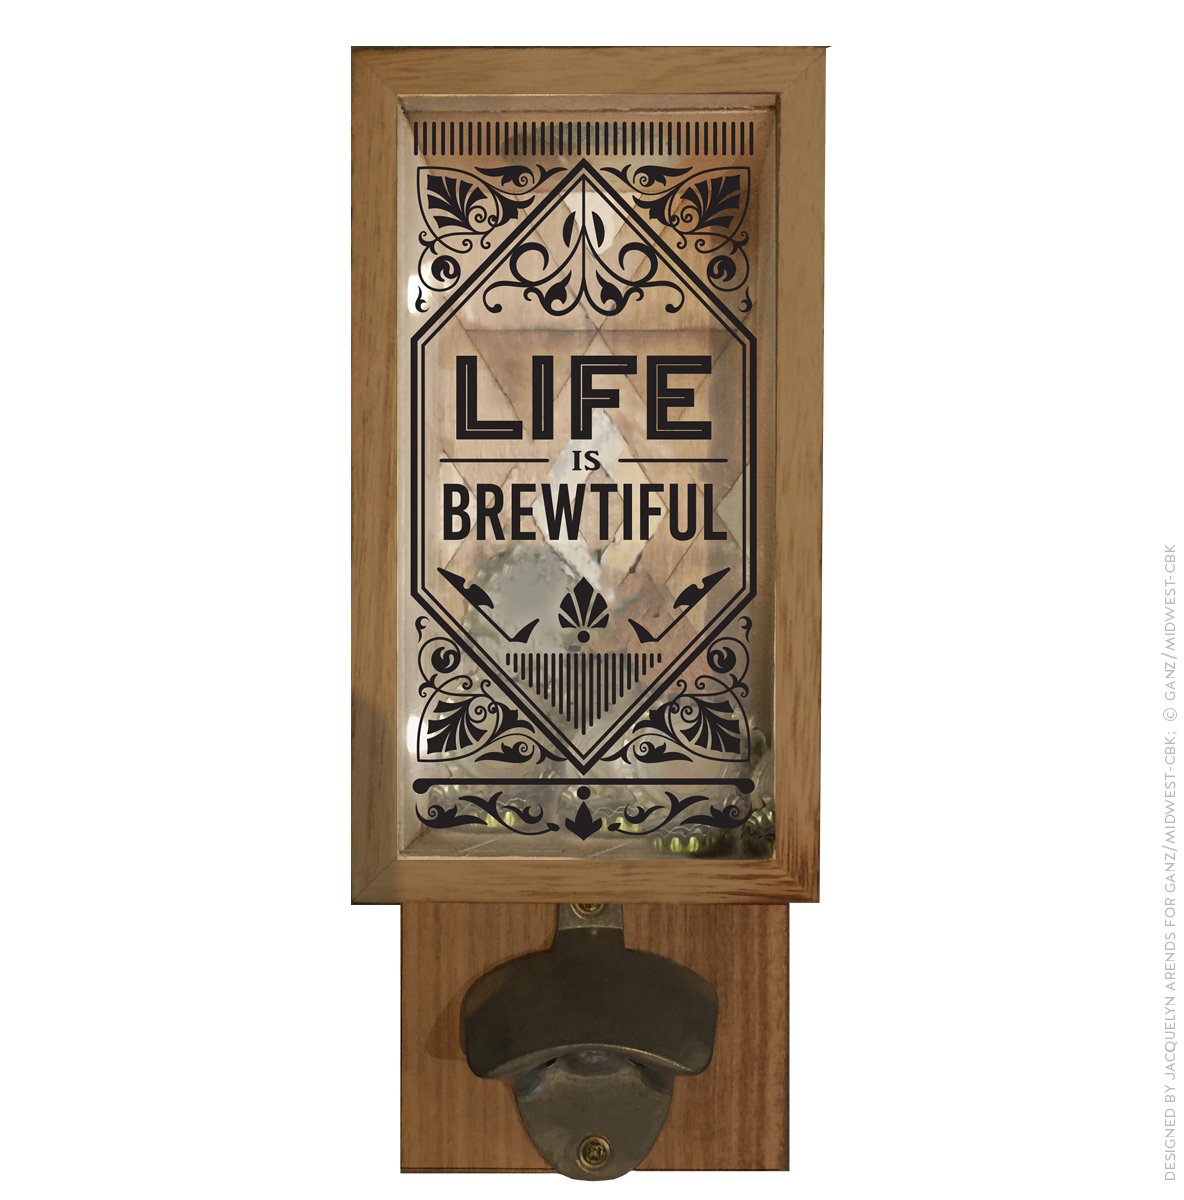 Men's Gift 2018 - Life is Brewtiful bottle cap opener and saver; © Ganz/Midwest-CBK 2018